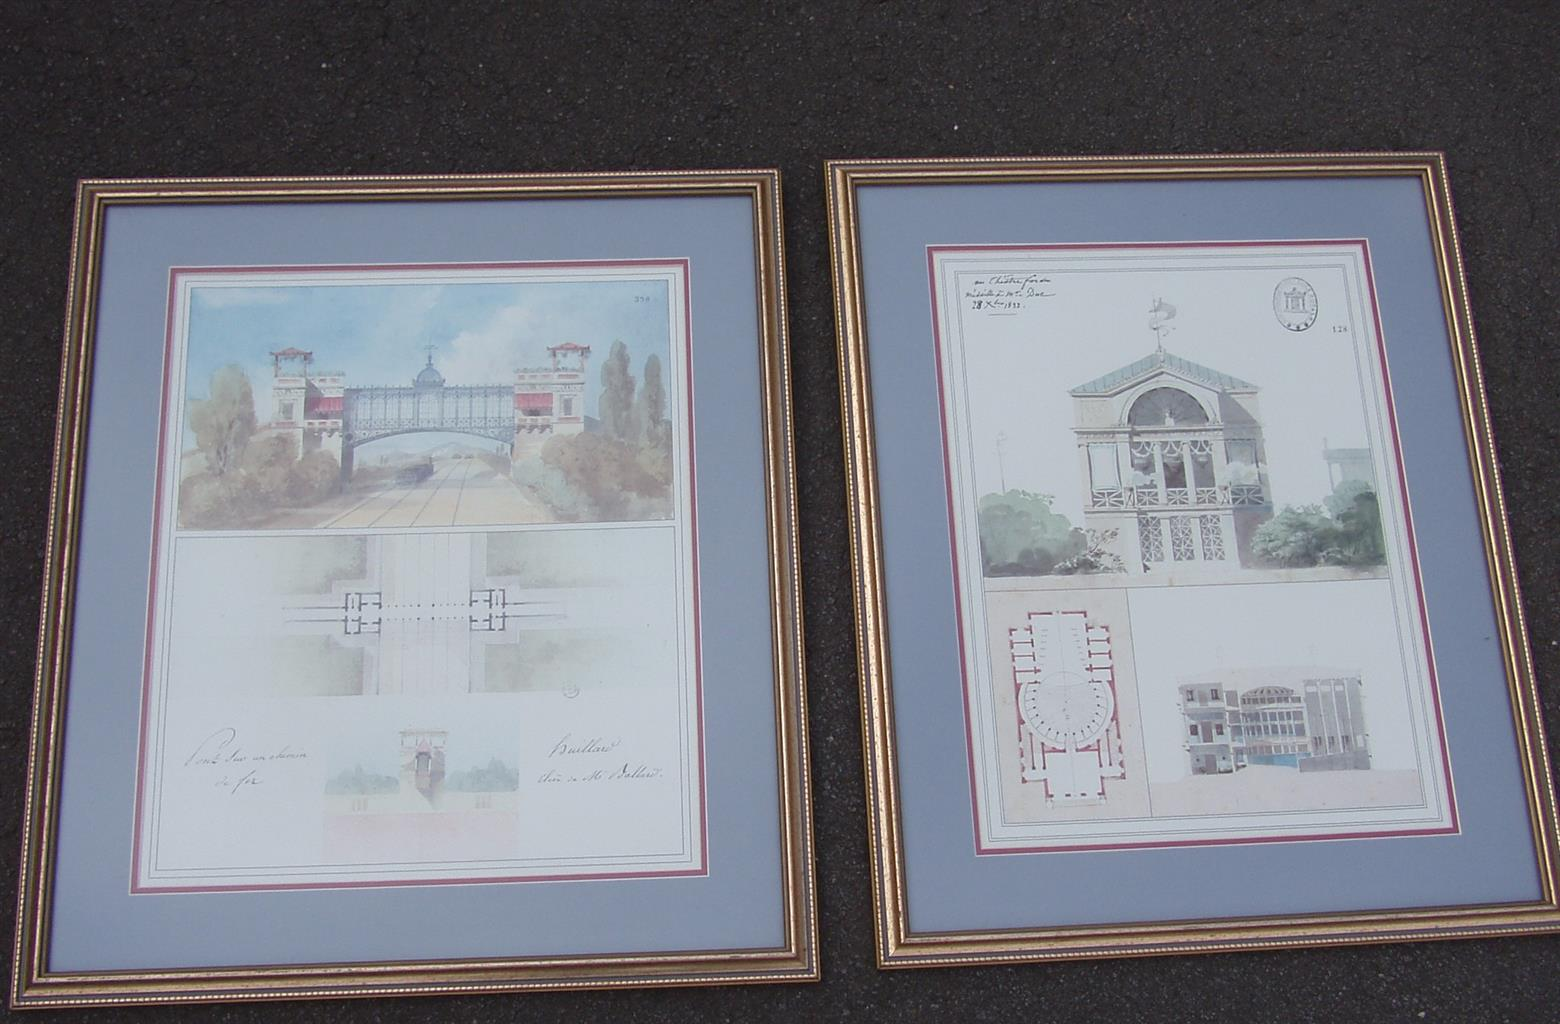 2 Quality Architectural Prints Framed - 53(L) x 65.5 (H)